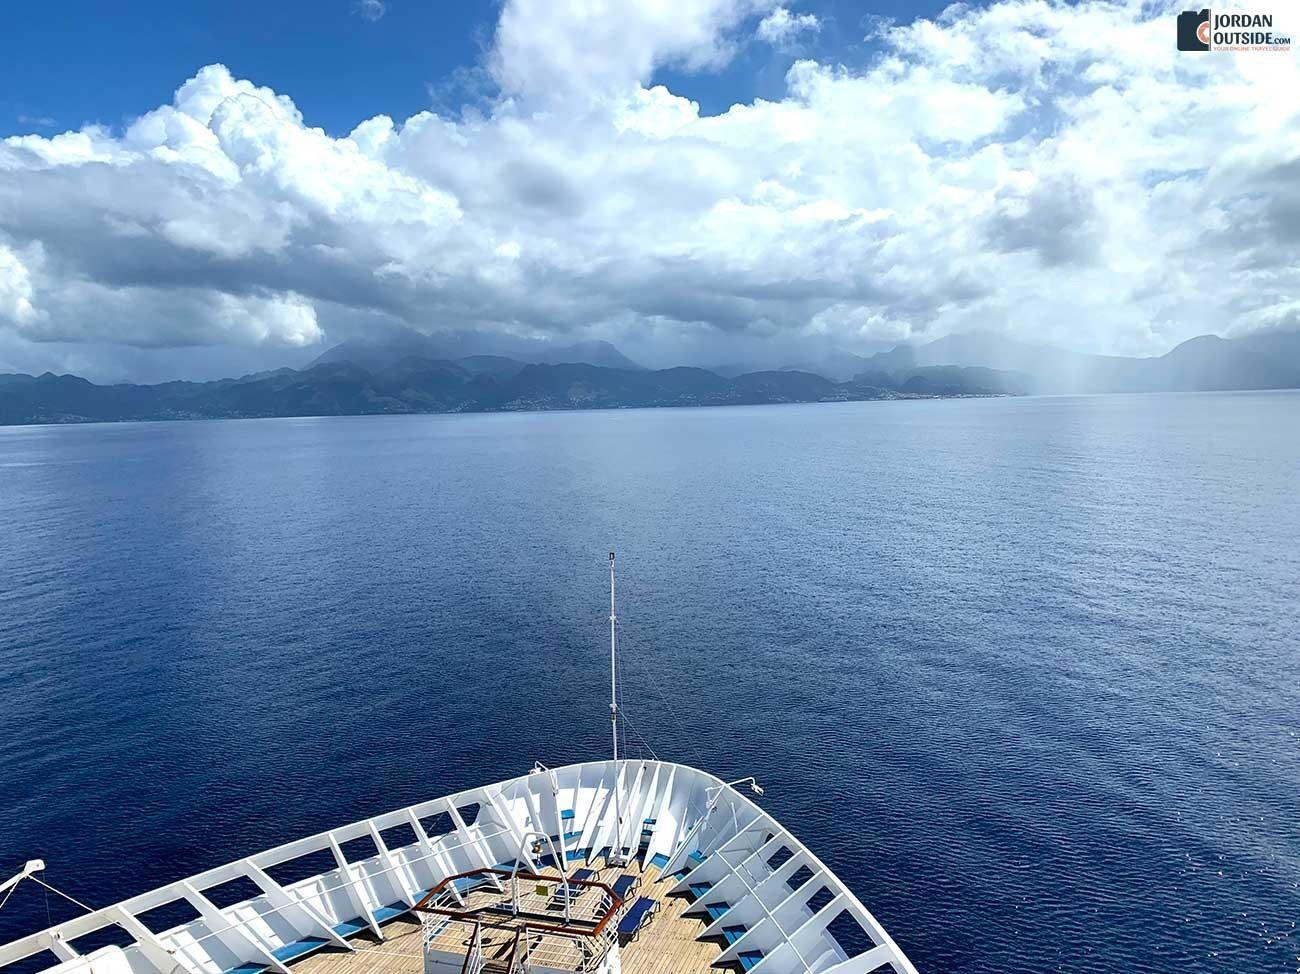 View of Dominica from the cruise ship